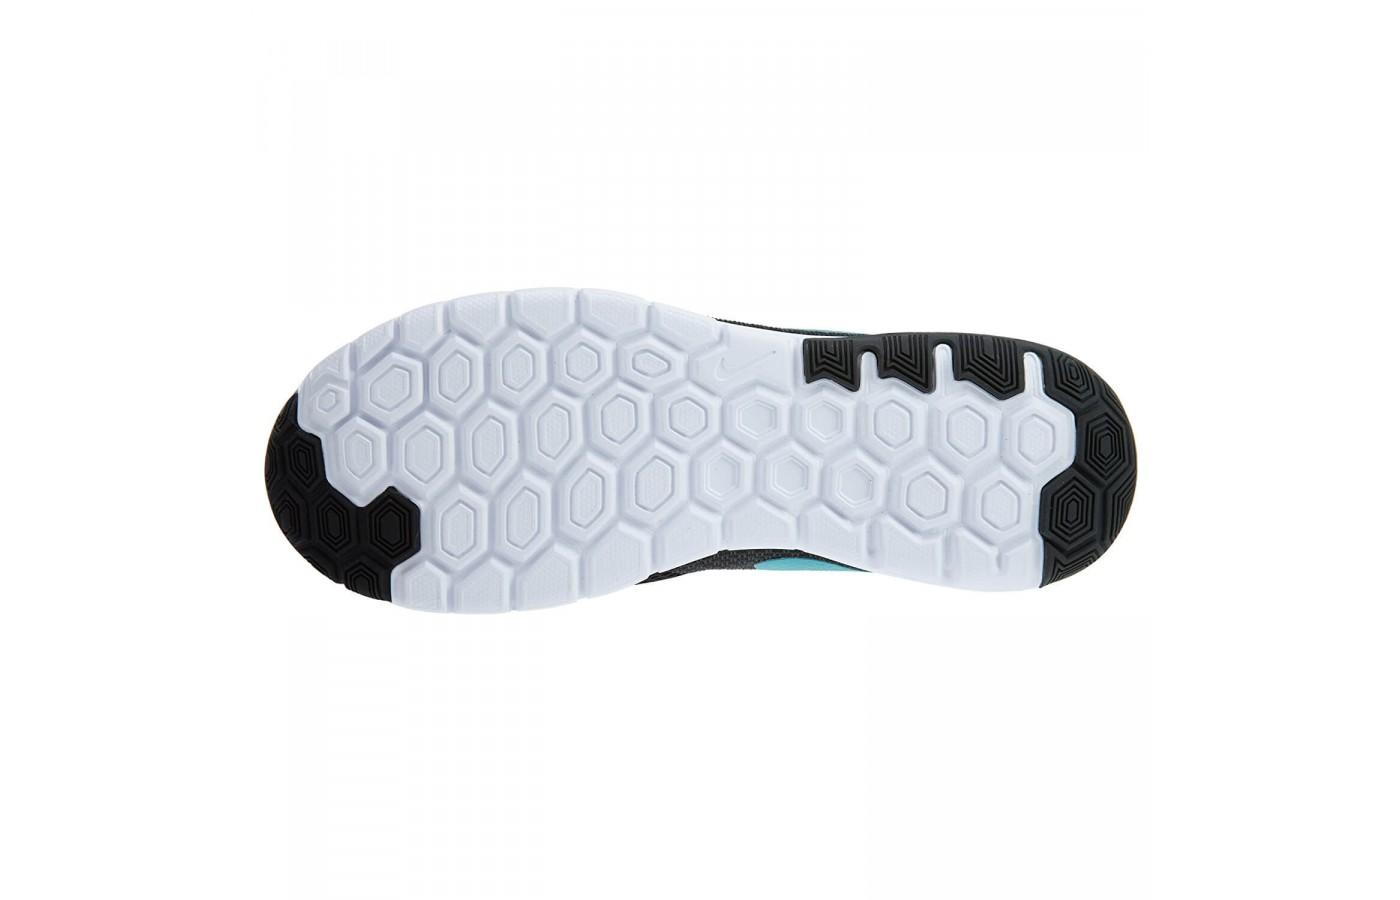 5feb8aab0c2 ... The outsole of the Nike Flex Experience RN 6 is durable and the  hexagonal lugs provide ...